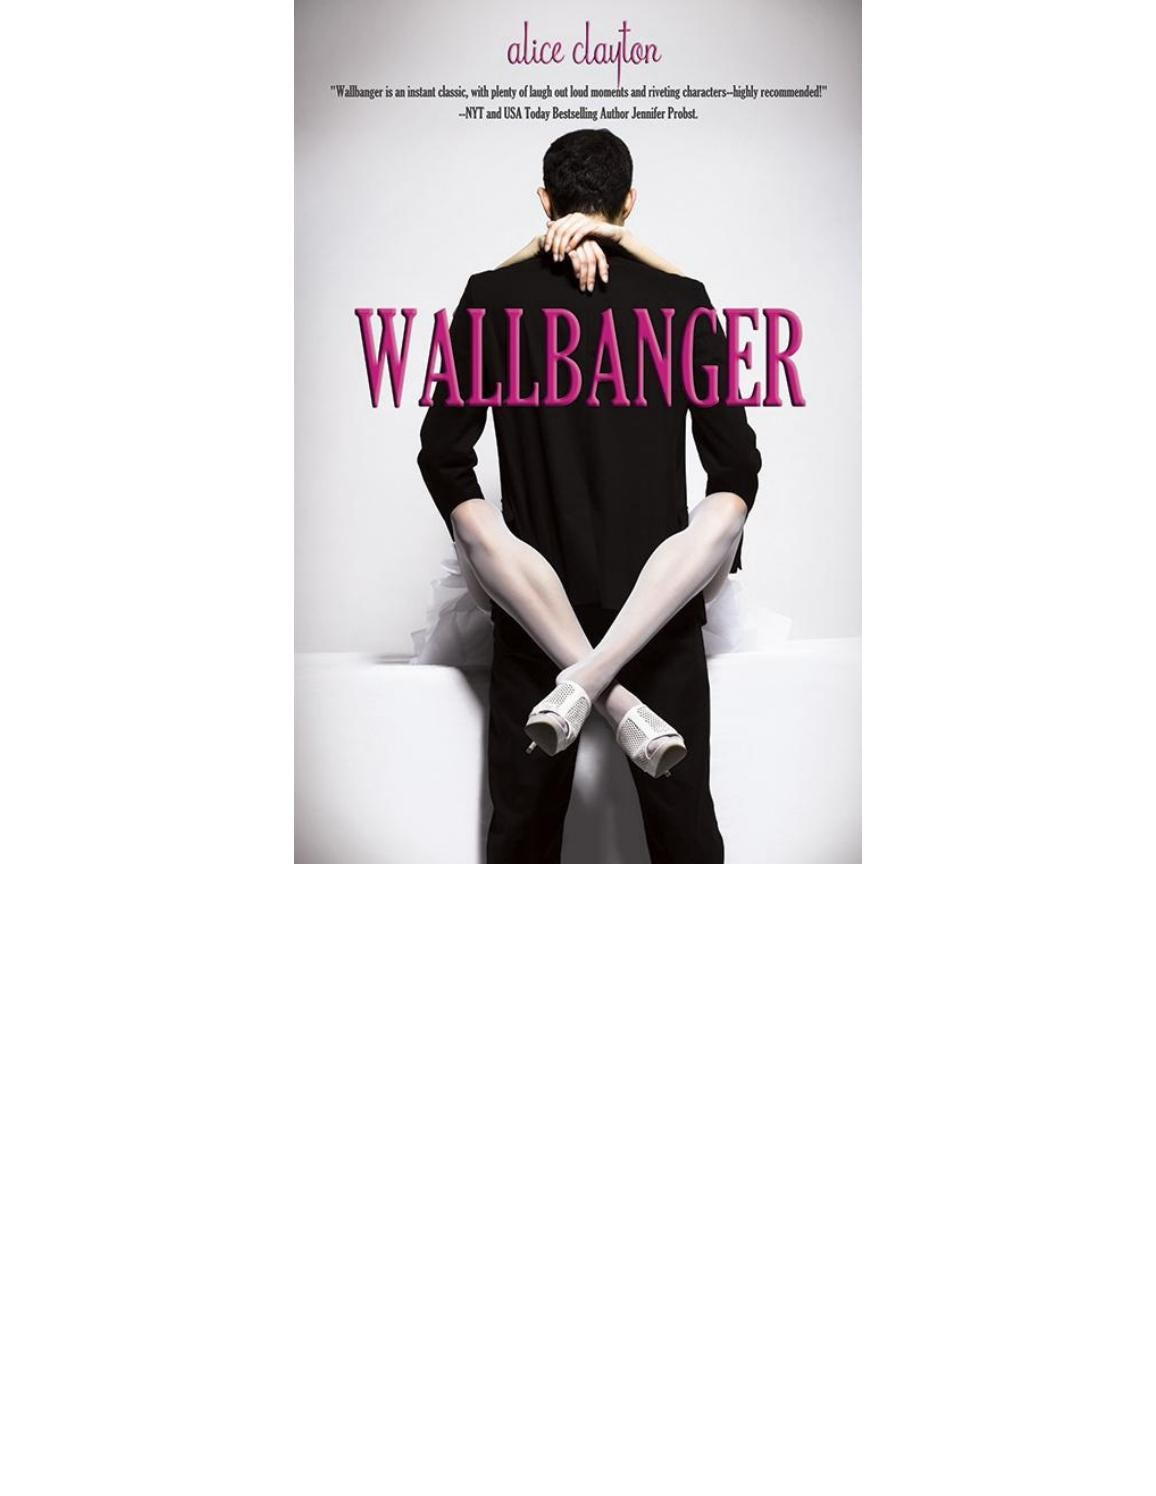 Wallbanger by alice clayton by inês   issuu